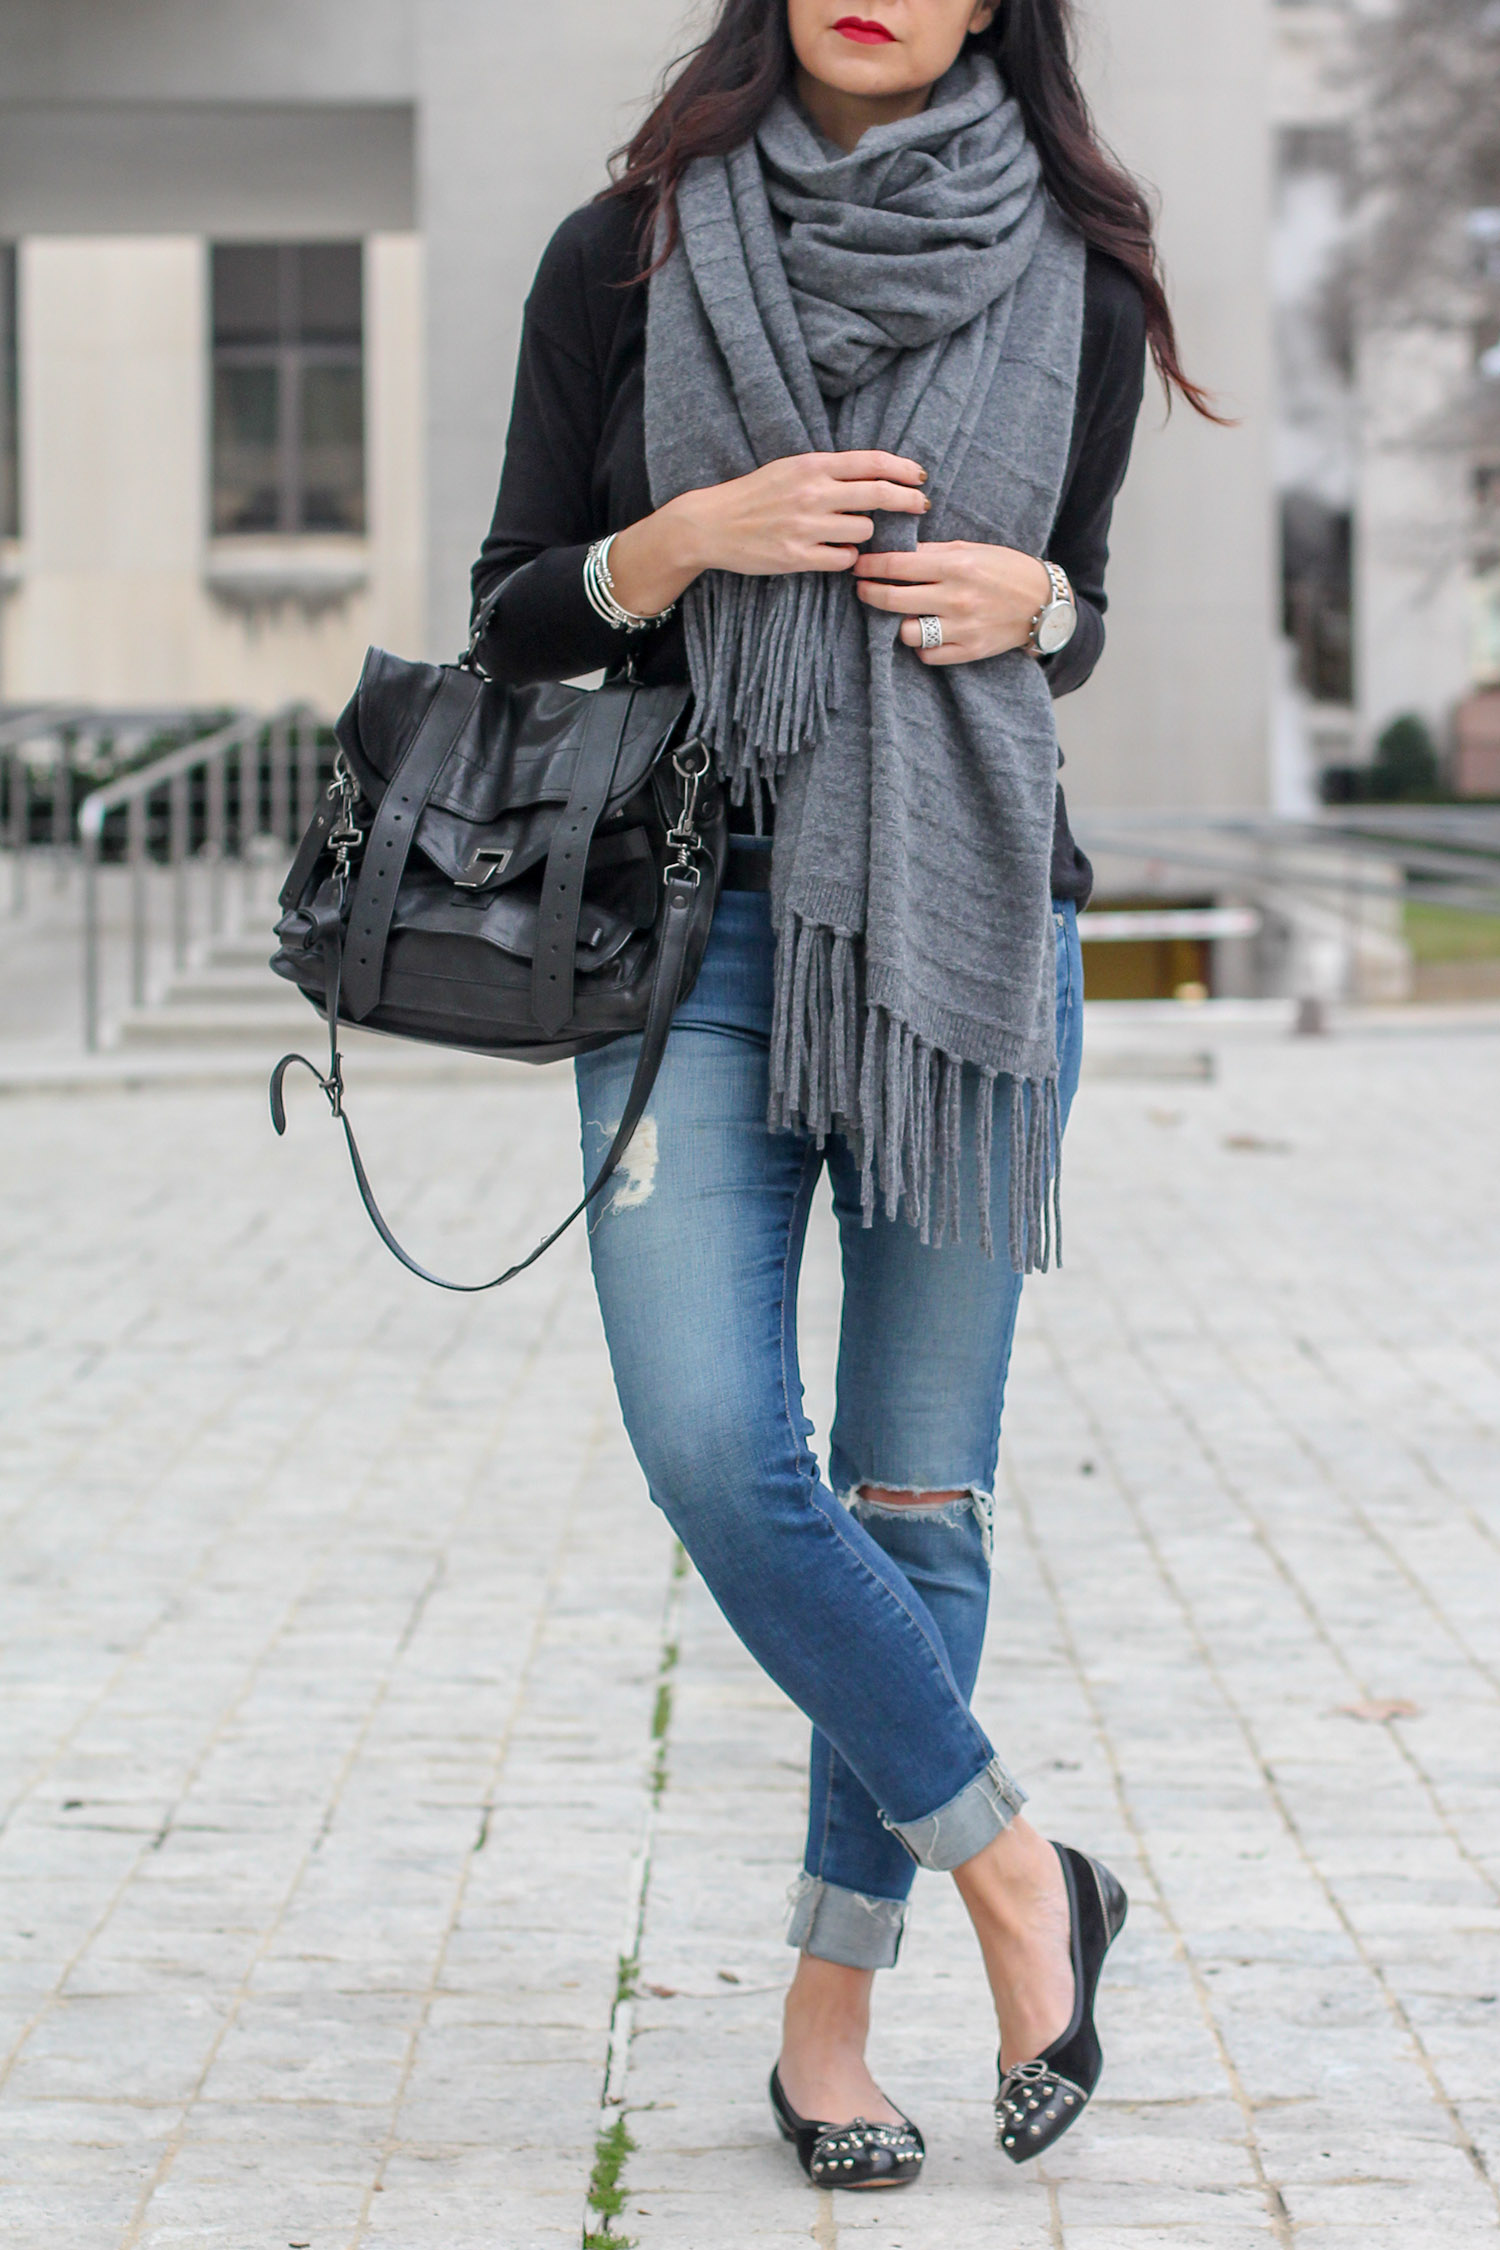 Distressed Jeans with Flats Outfit